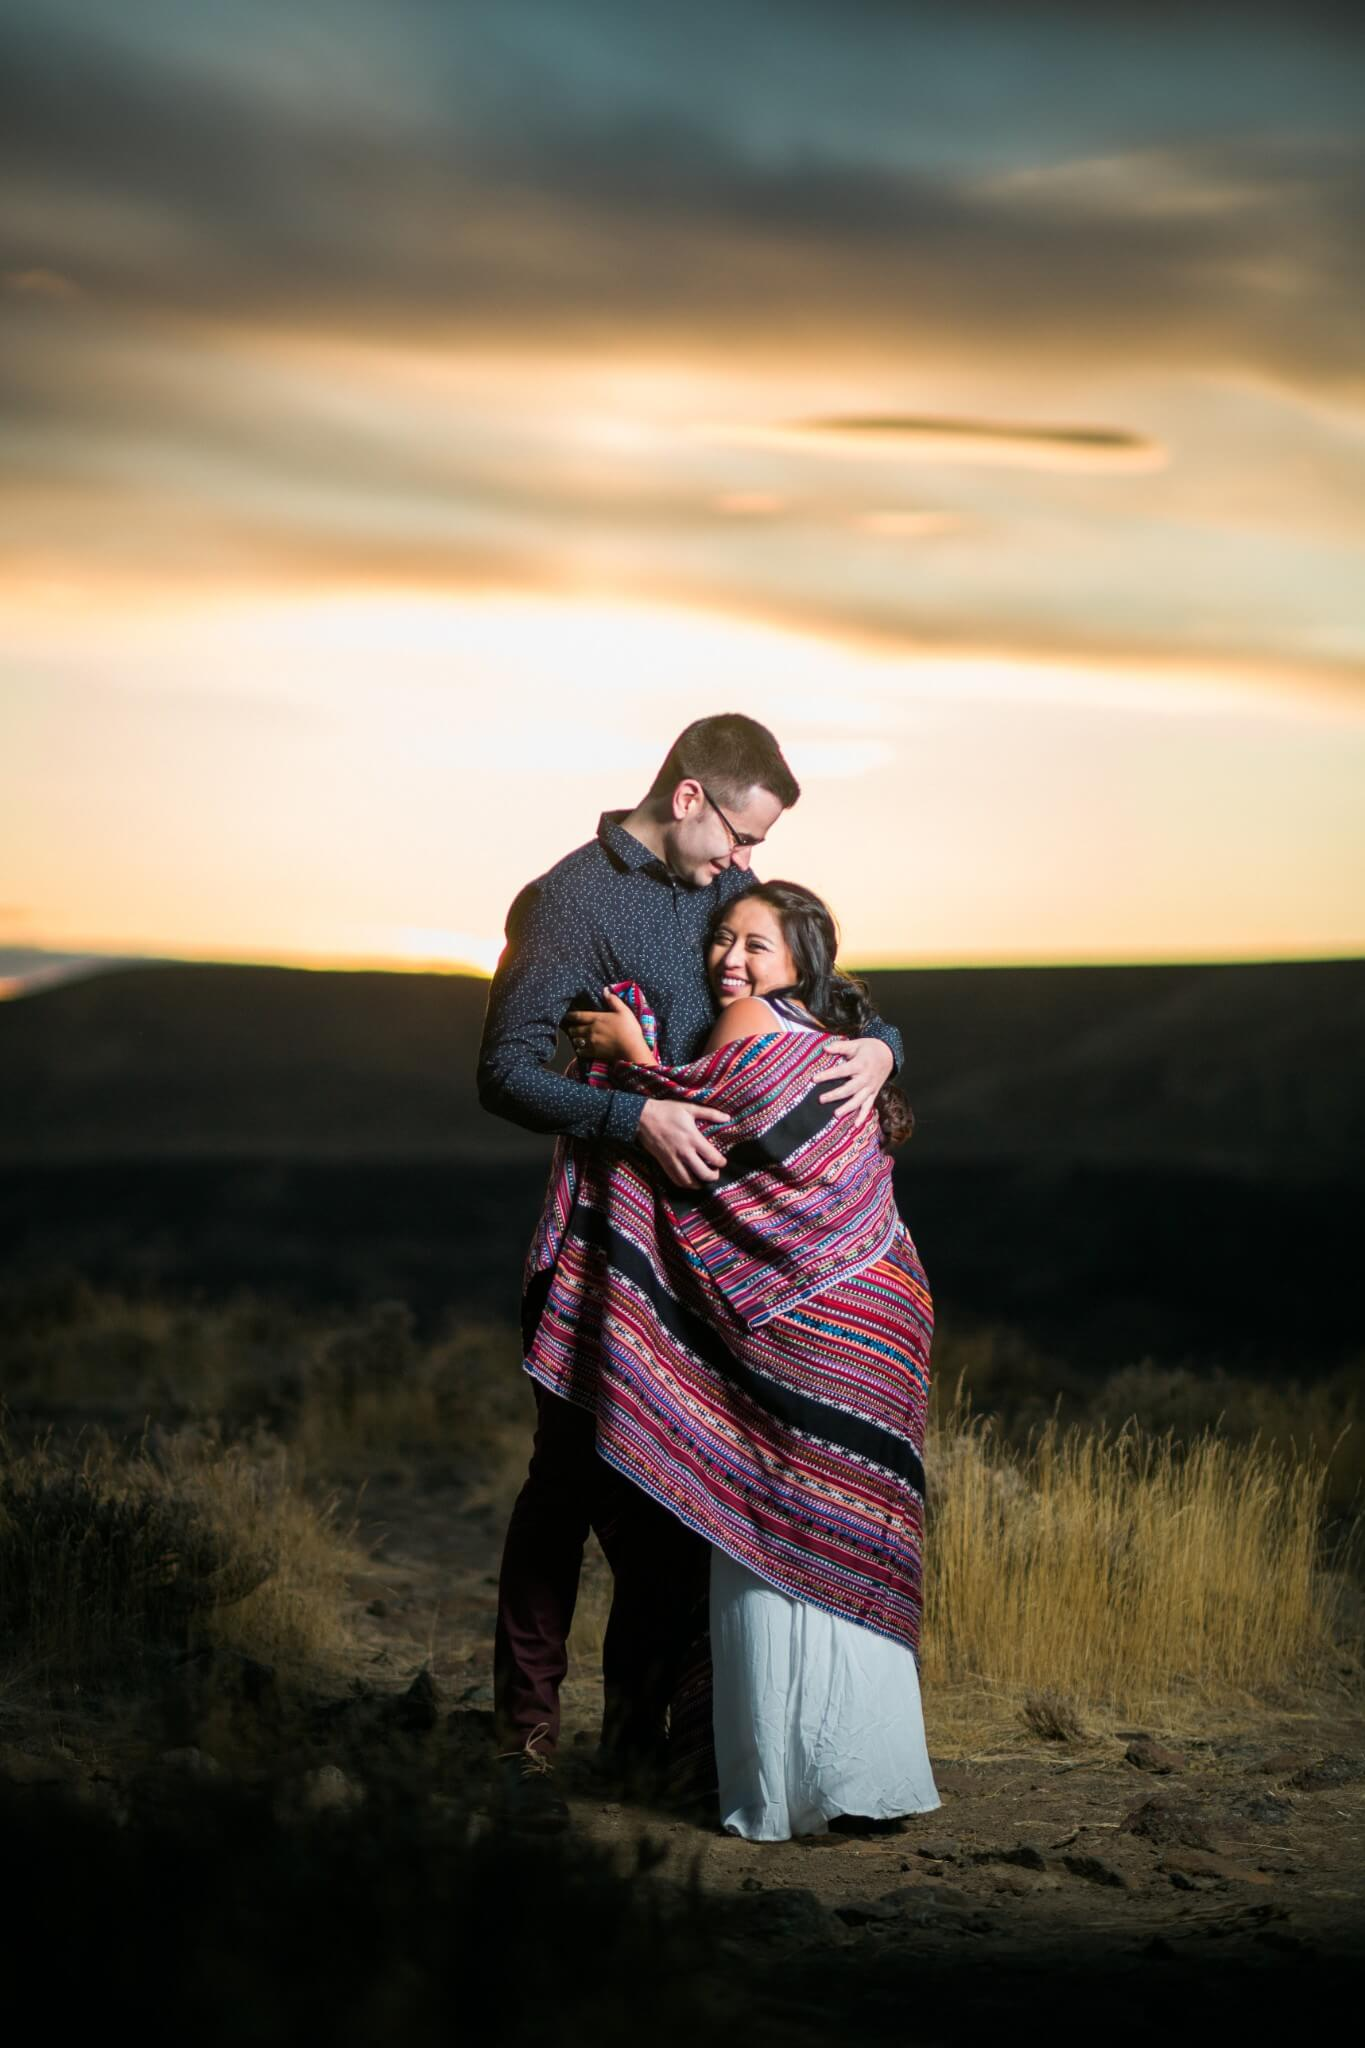 Lesly & Michael Vantage Engagement by Bill Weisgerber Spokane Photographer (63 of 71).jpg